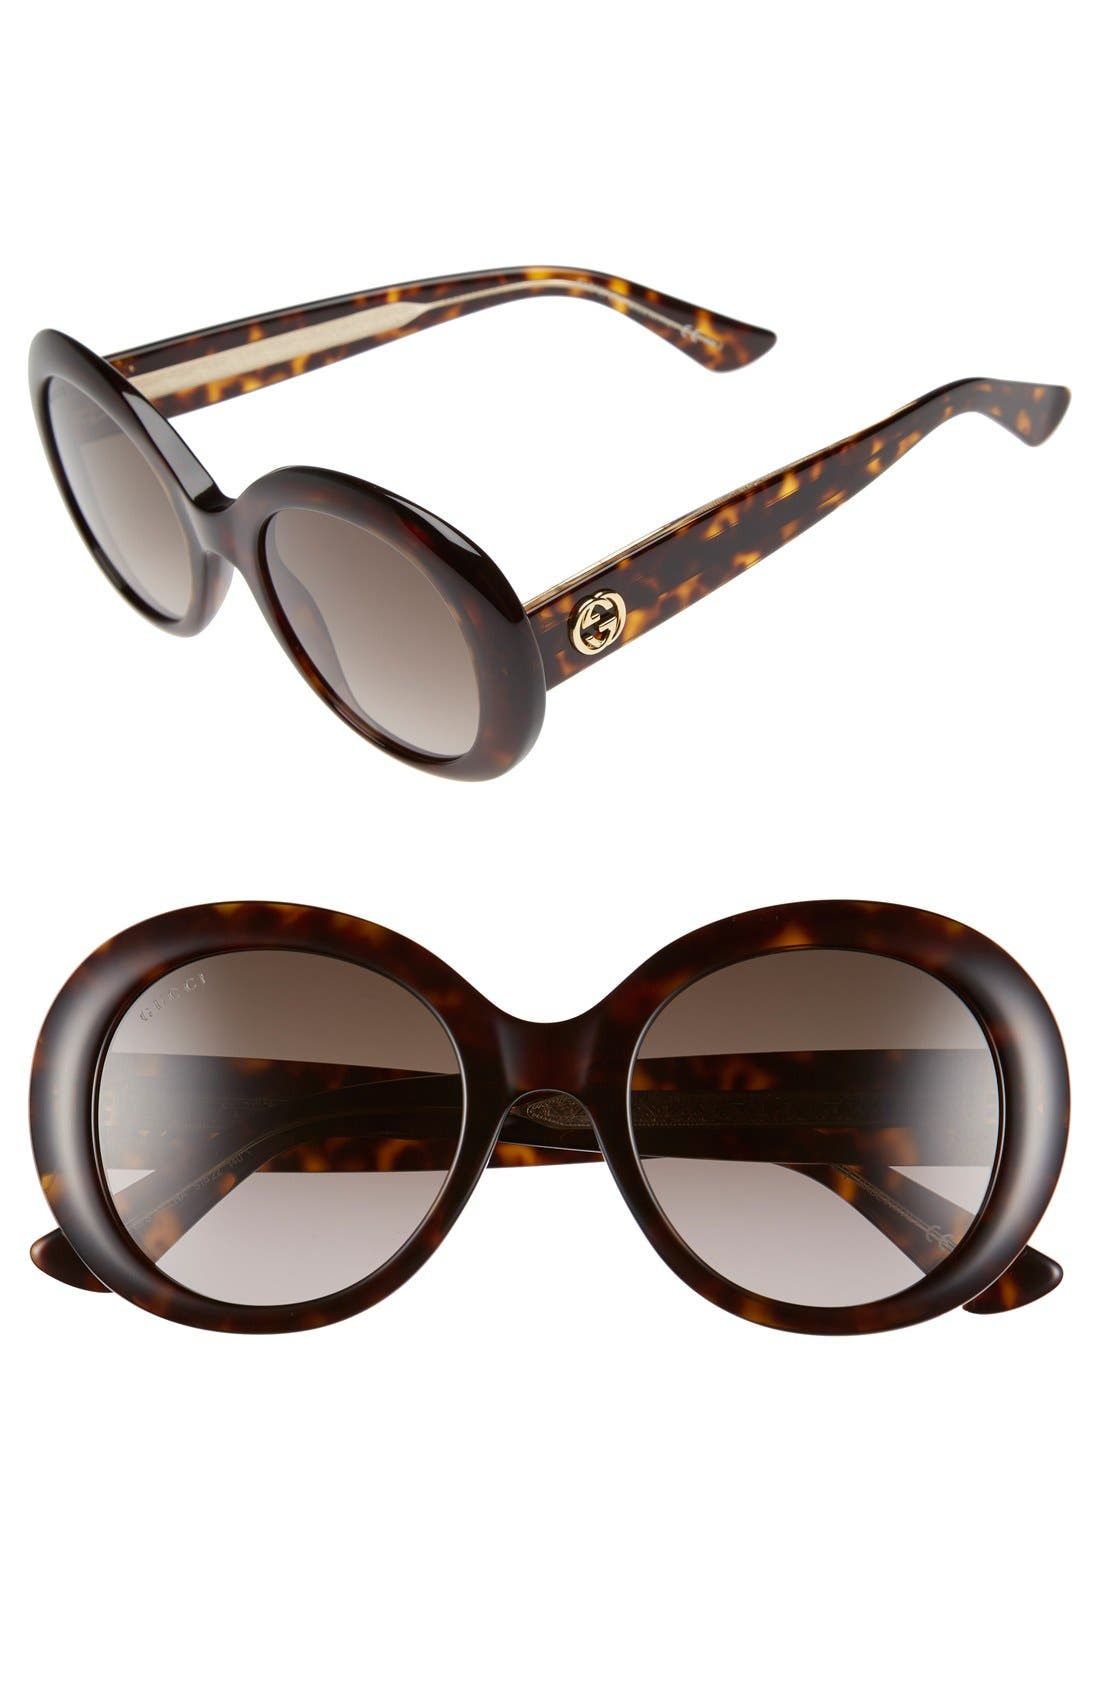 Alternate Image 1 Selected - Gucci 51mm Round Sunglasses